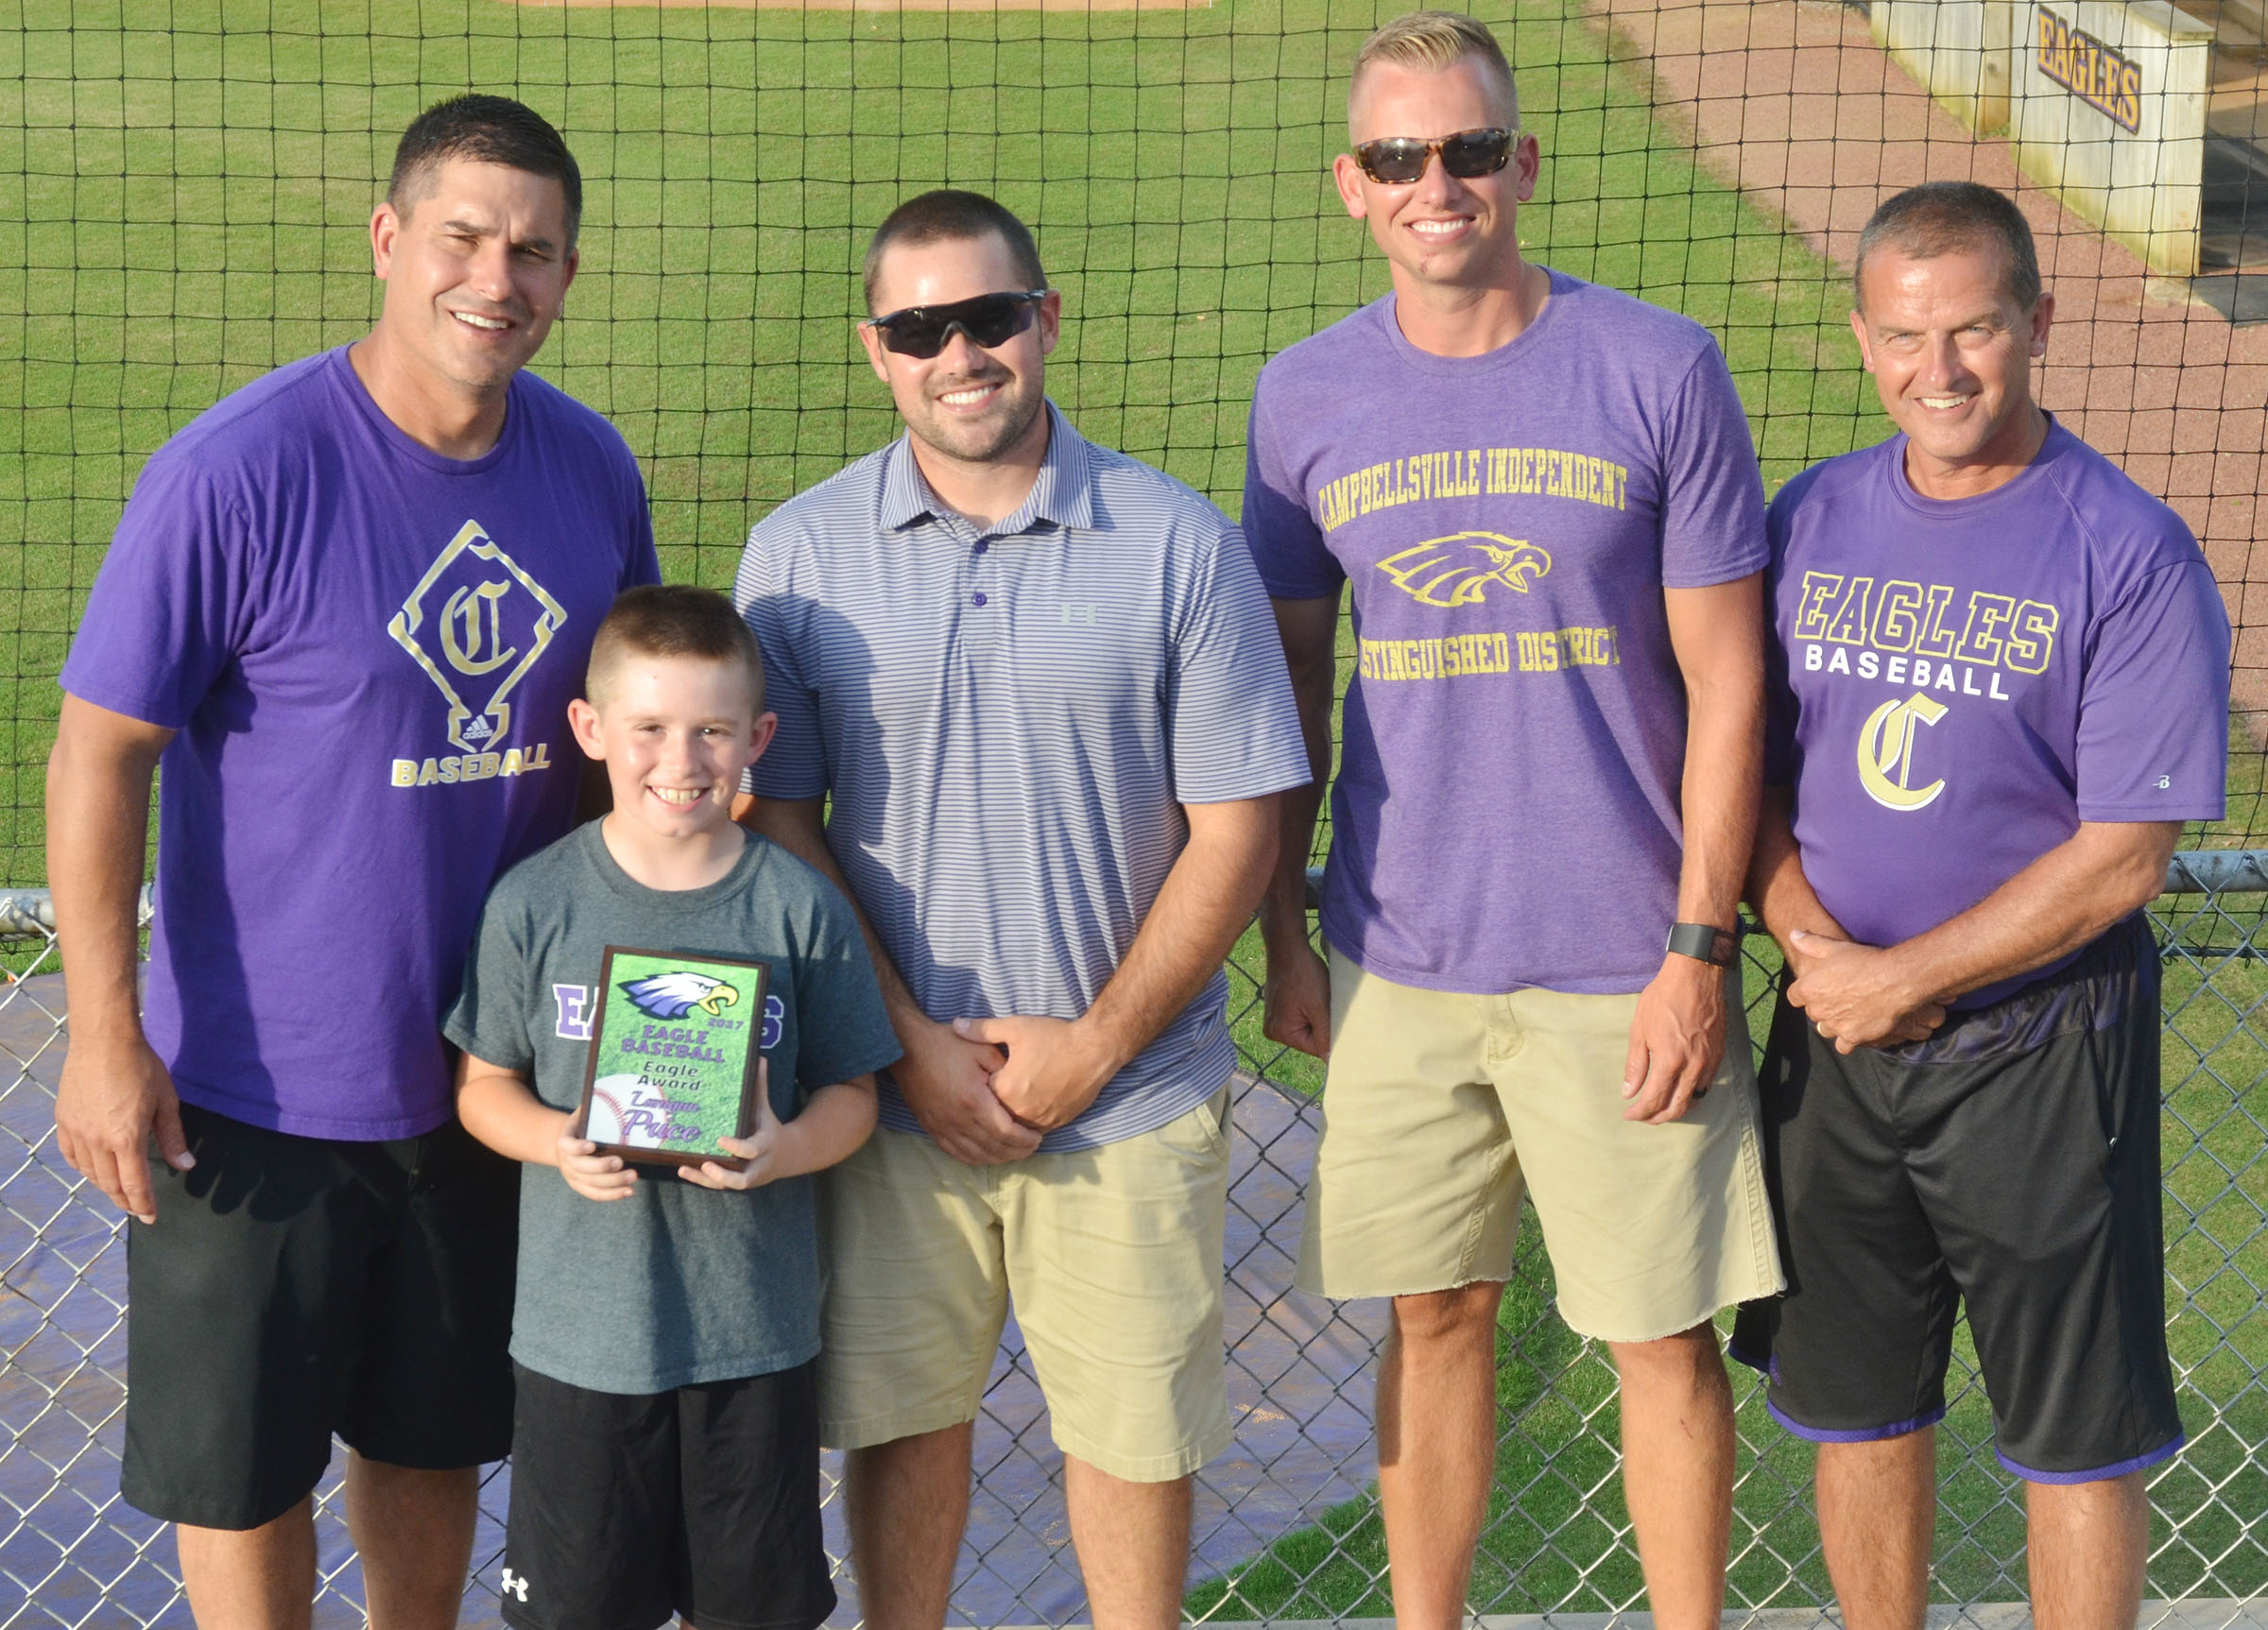 Campbellsville Elementary School second-grader Lanigan Price received an Eagle Award for being the team's bat boy. From left are head coach Kirby Smith and assistant coaches Blake Milby, Zach Lewis and Lynn Kearney. Absent from the photo is assistant coach Phil Gowdy.